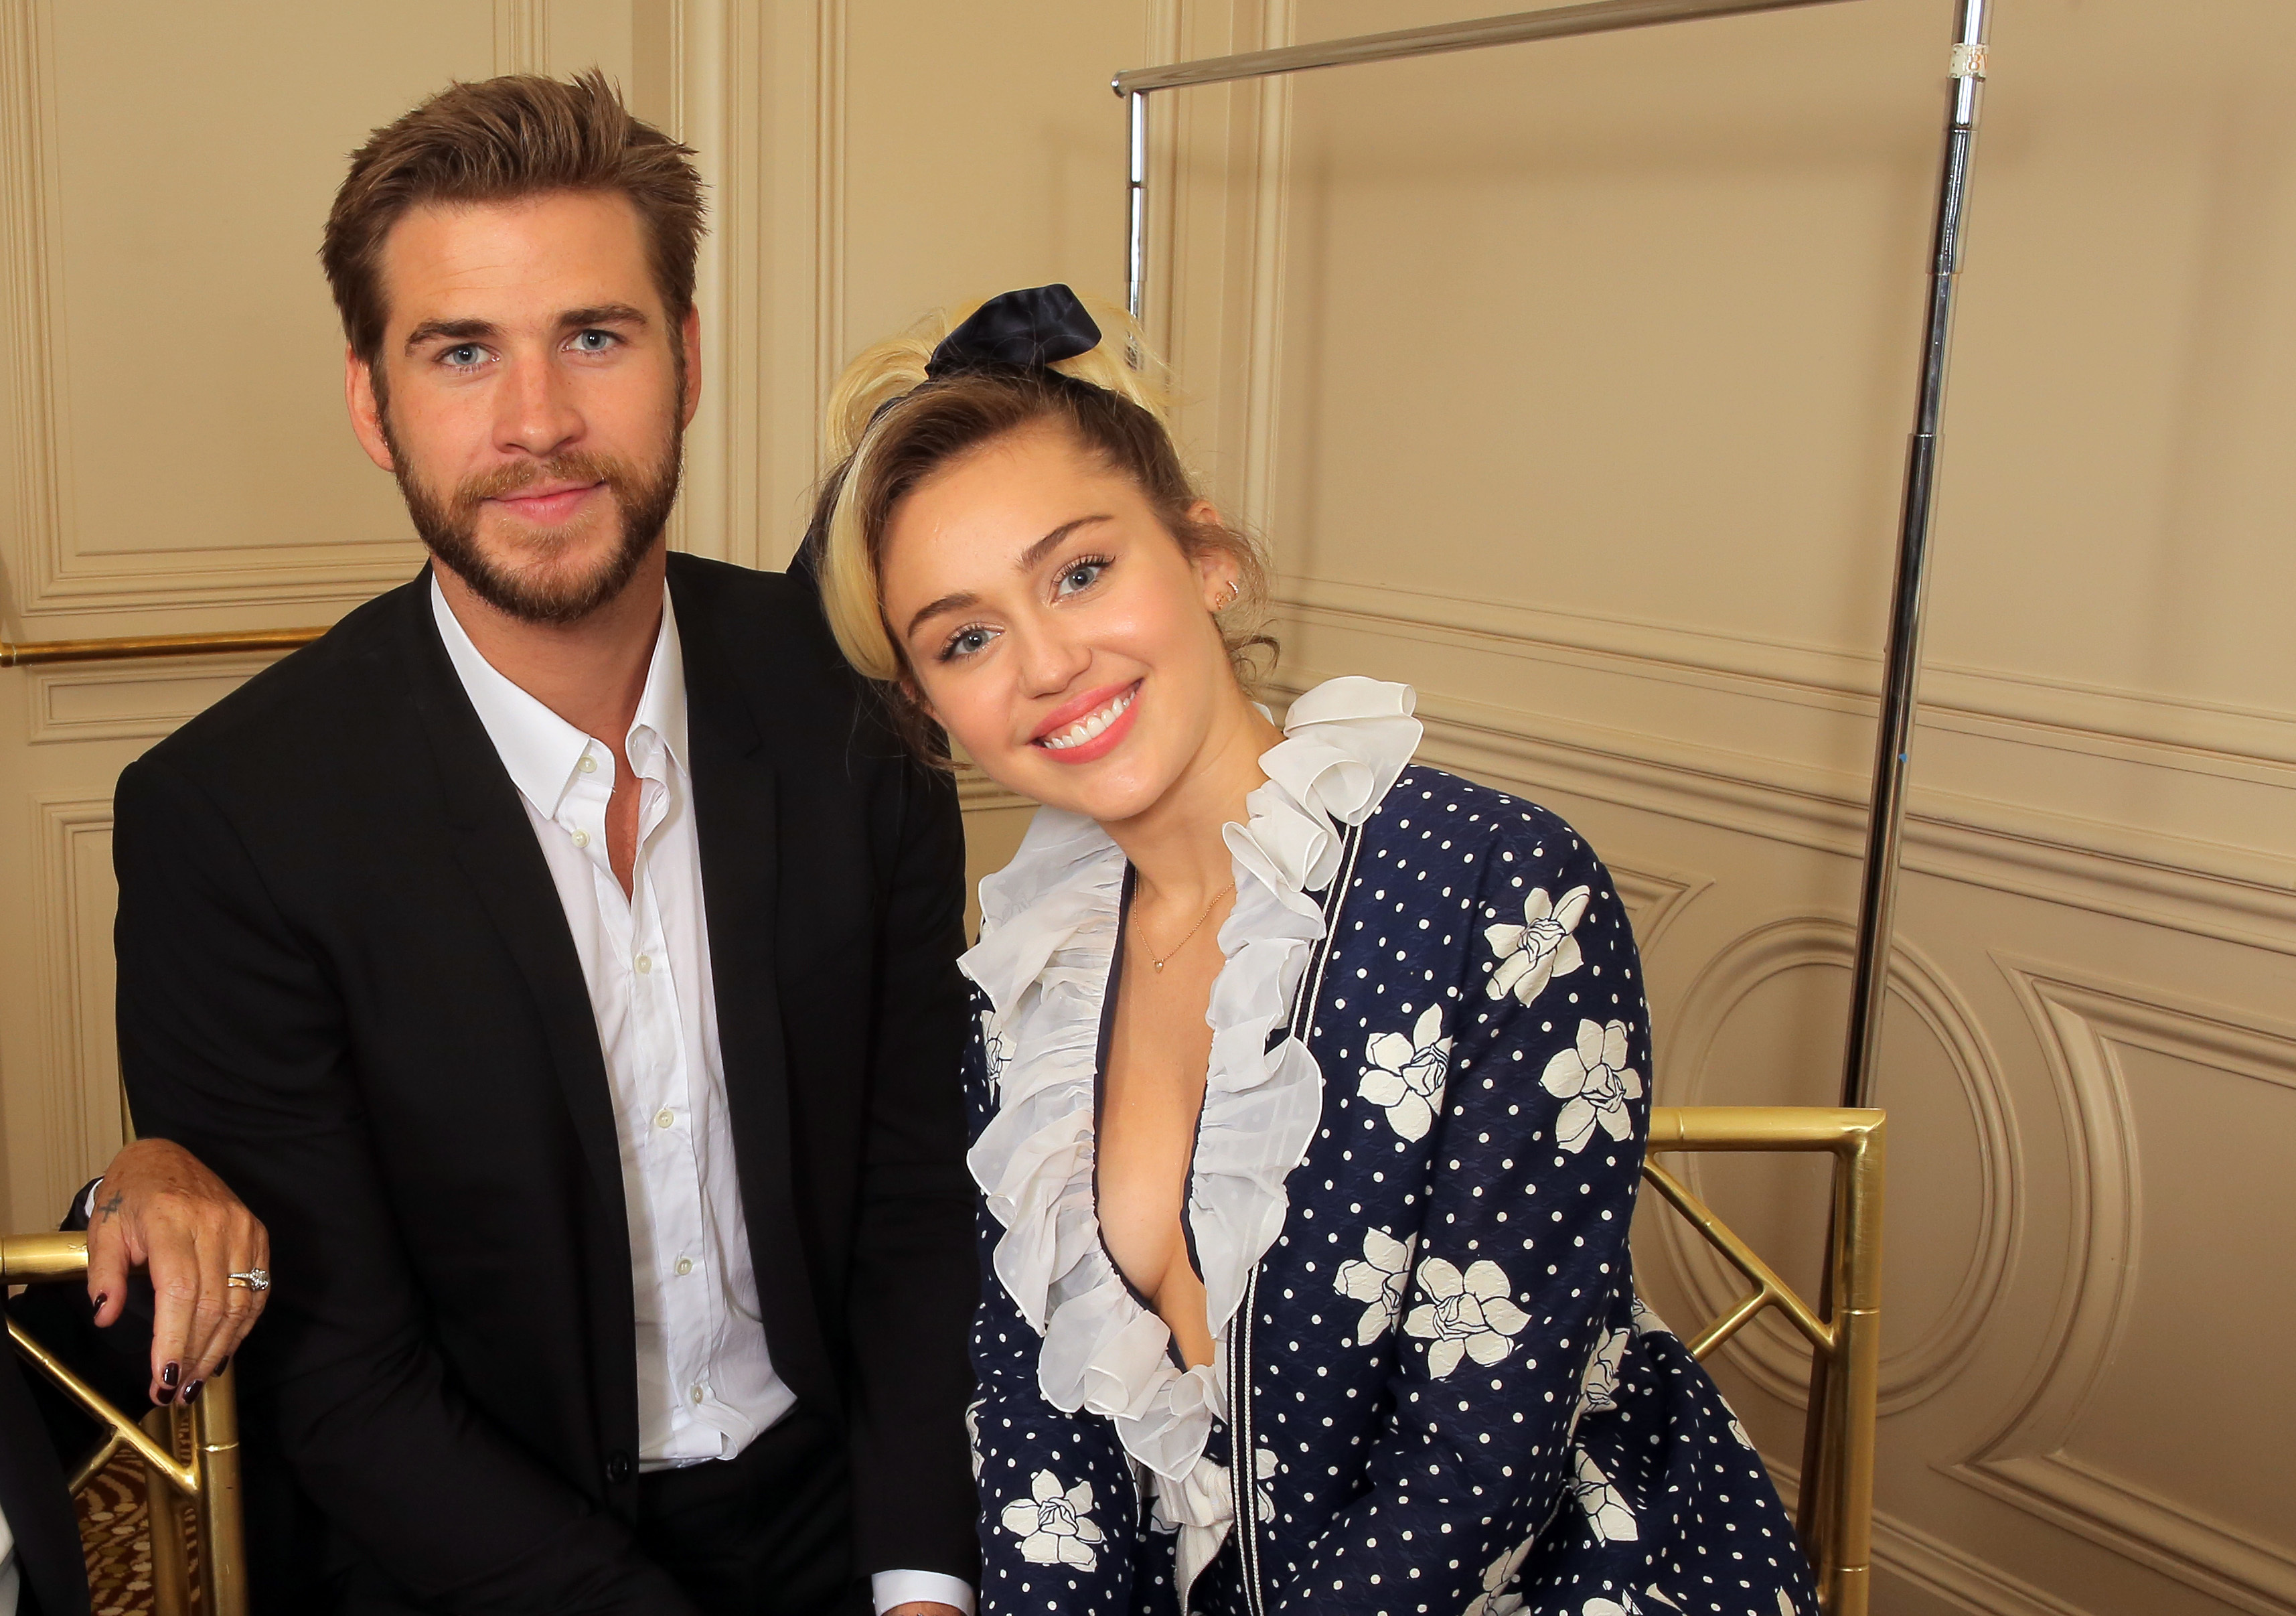 Miley Cyrus and Liam Hemsworth are not eloping